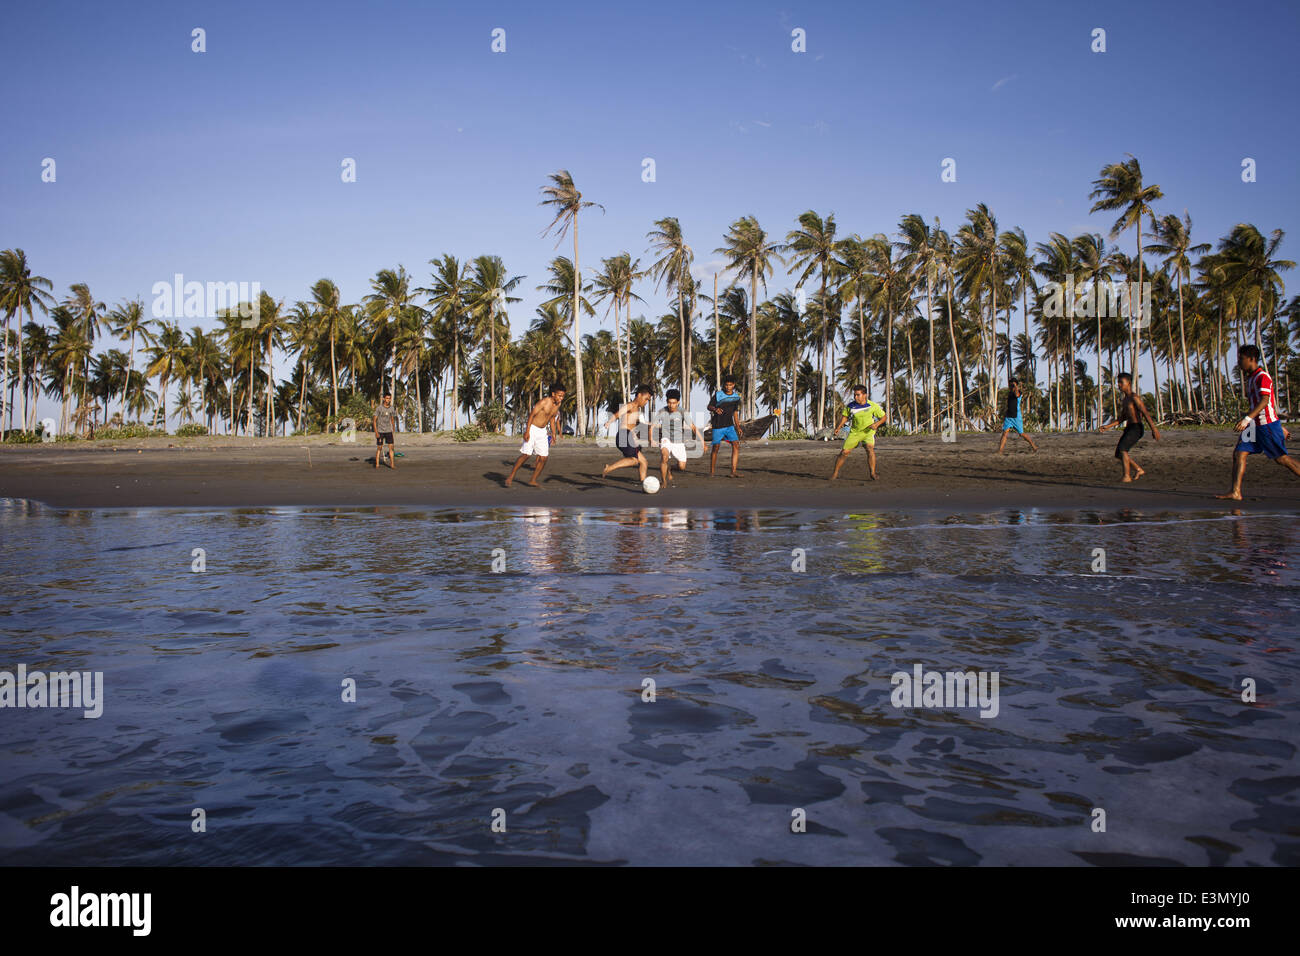 Banda Aceh, Aceh, Indonesia. 25th June, 2014. Teenagers playing football at a beach in Banda Aceh, Aceh, Indonesia.Football Stock Photo